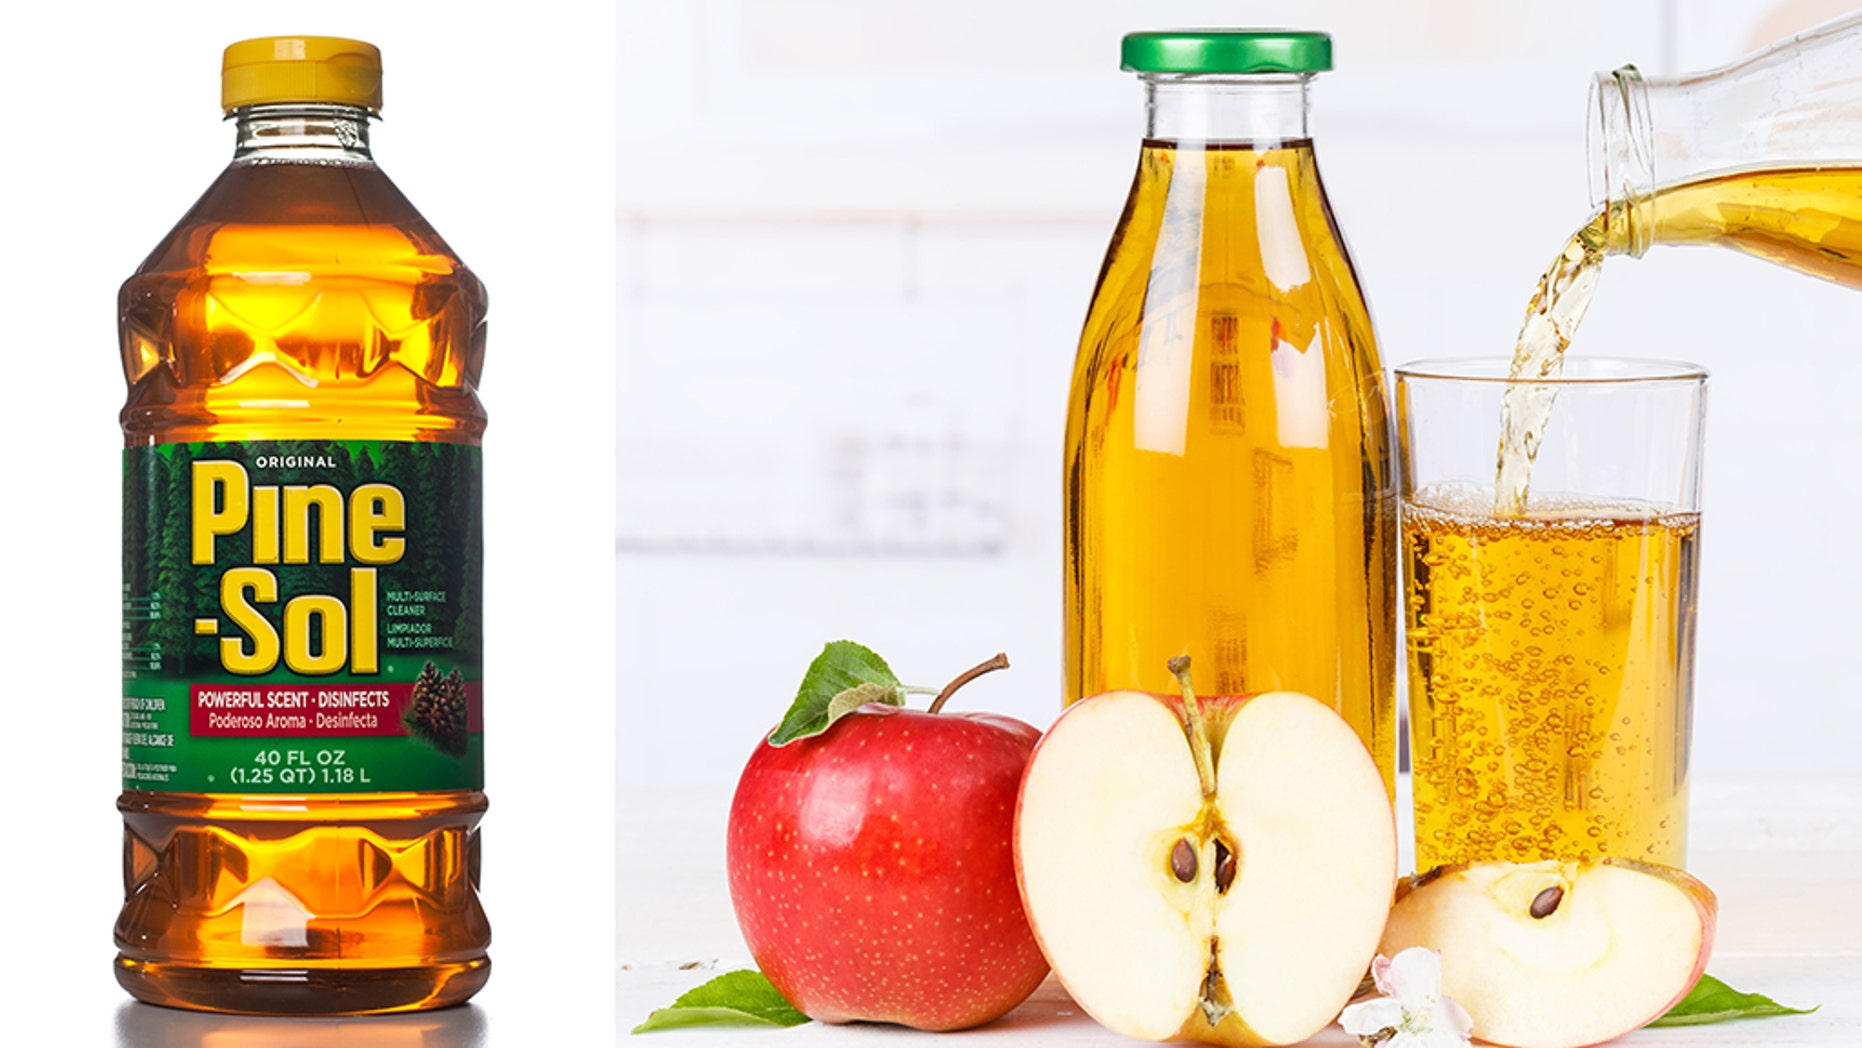 "A teaching assistant at a preschool in Hawaii accidentally gave children Pine-Sol cleaning fluid instead of apple juice, health officials said.<br data-cke-eol=""1"">"